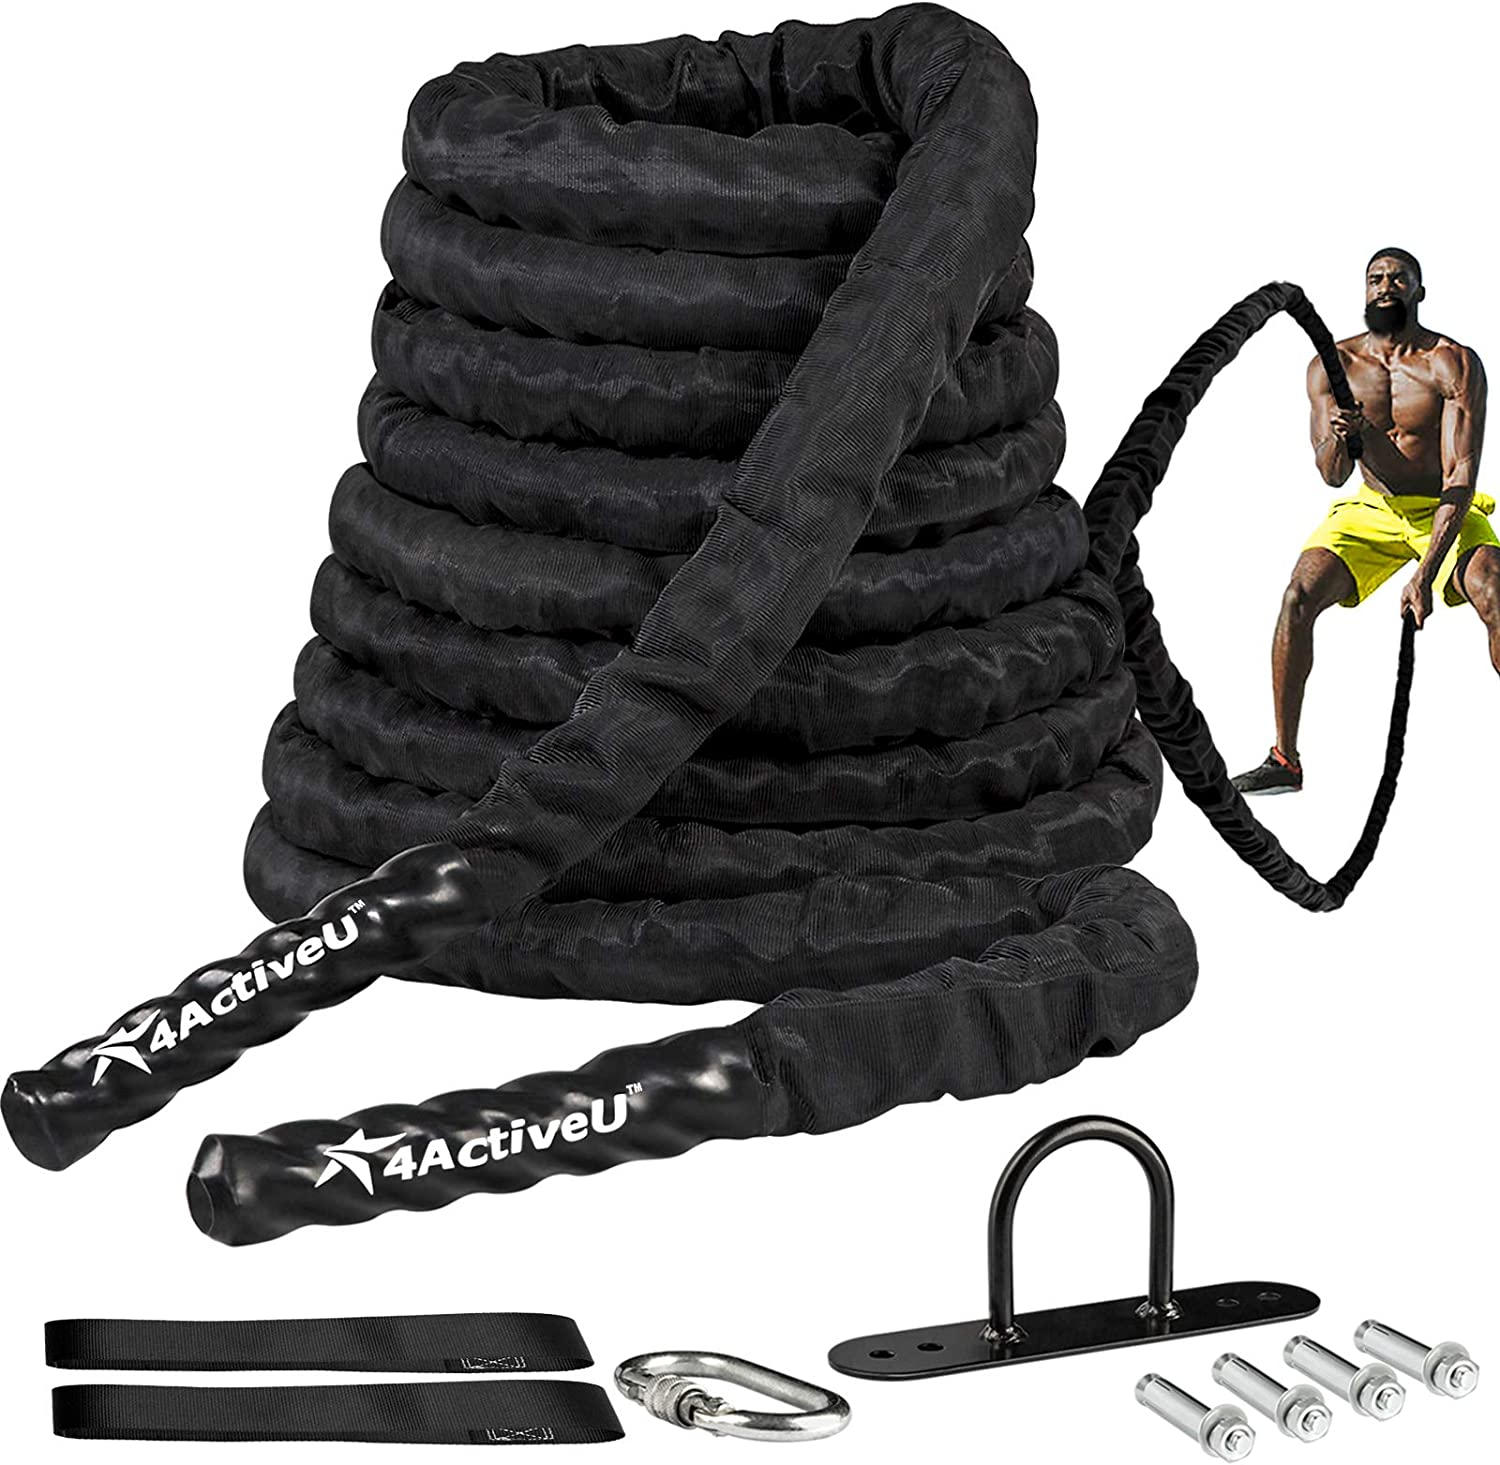 4ActiveU Battle Rope 30ft Length Heavy Battle Exercise Training Rope Workout Rope